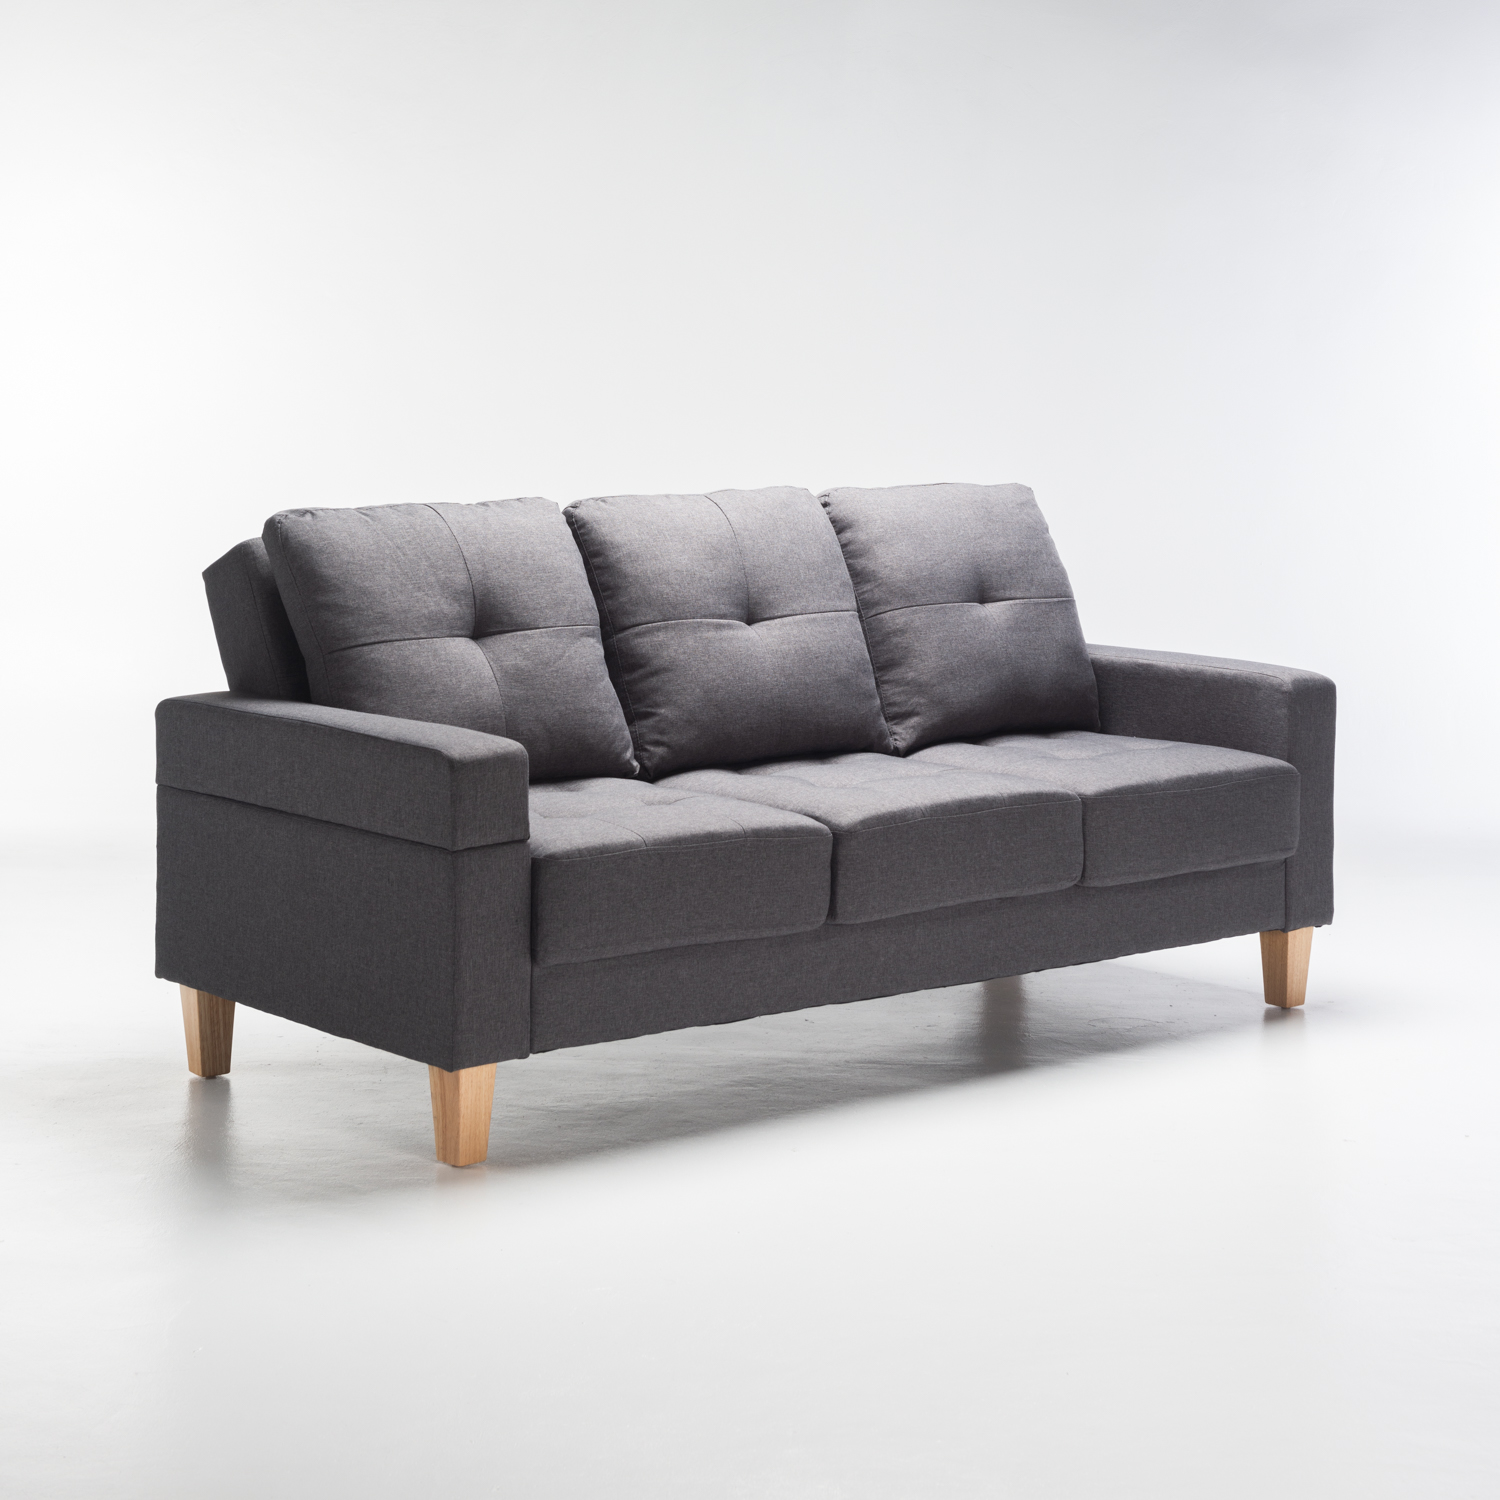 MOLLY FABRIC SLEEPER COUCH